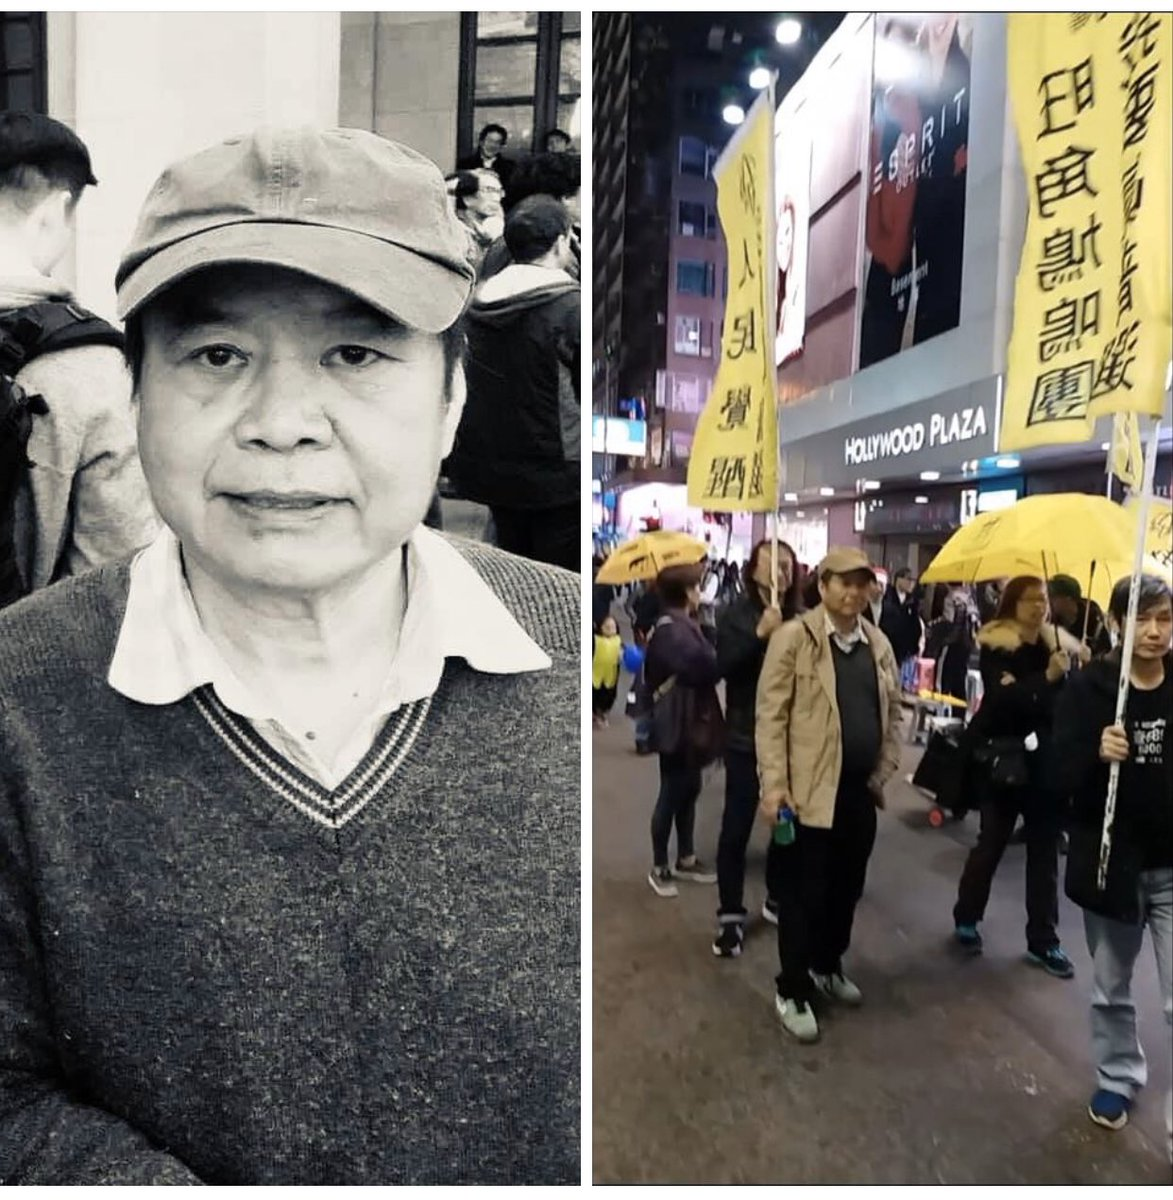 Heartbreaking News!  Wing Lee (李榮), a 65-year-old activist, passed away on Dec 3 after breathing in tear gas on Nov 21. Lee suffered from heart disease and was scheduled to have an angioplasty surgery.   Source: Real Hong King News  #HKPoliceBrutality  #HongKongProtest <br>http://pic.twitter.com/onMVOKwEC1